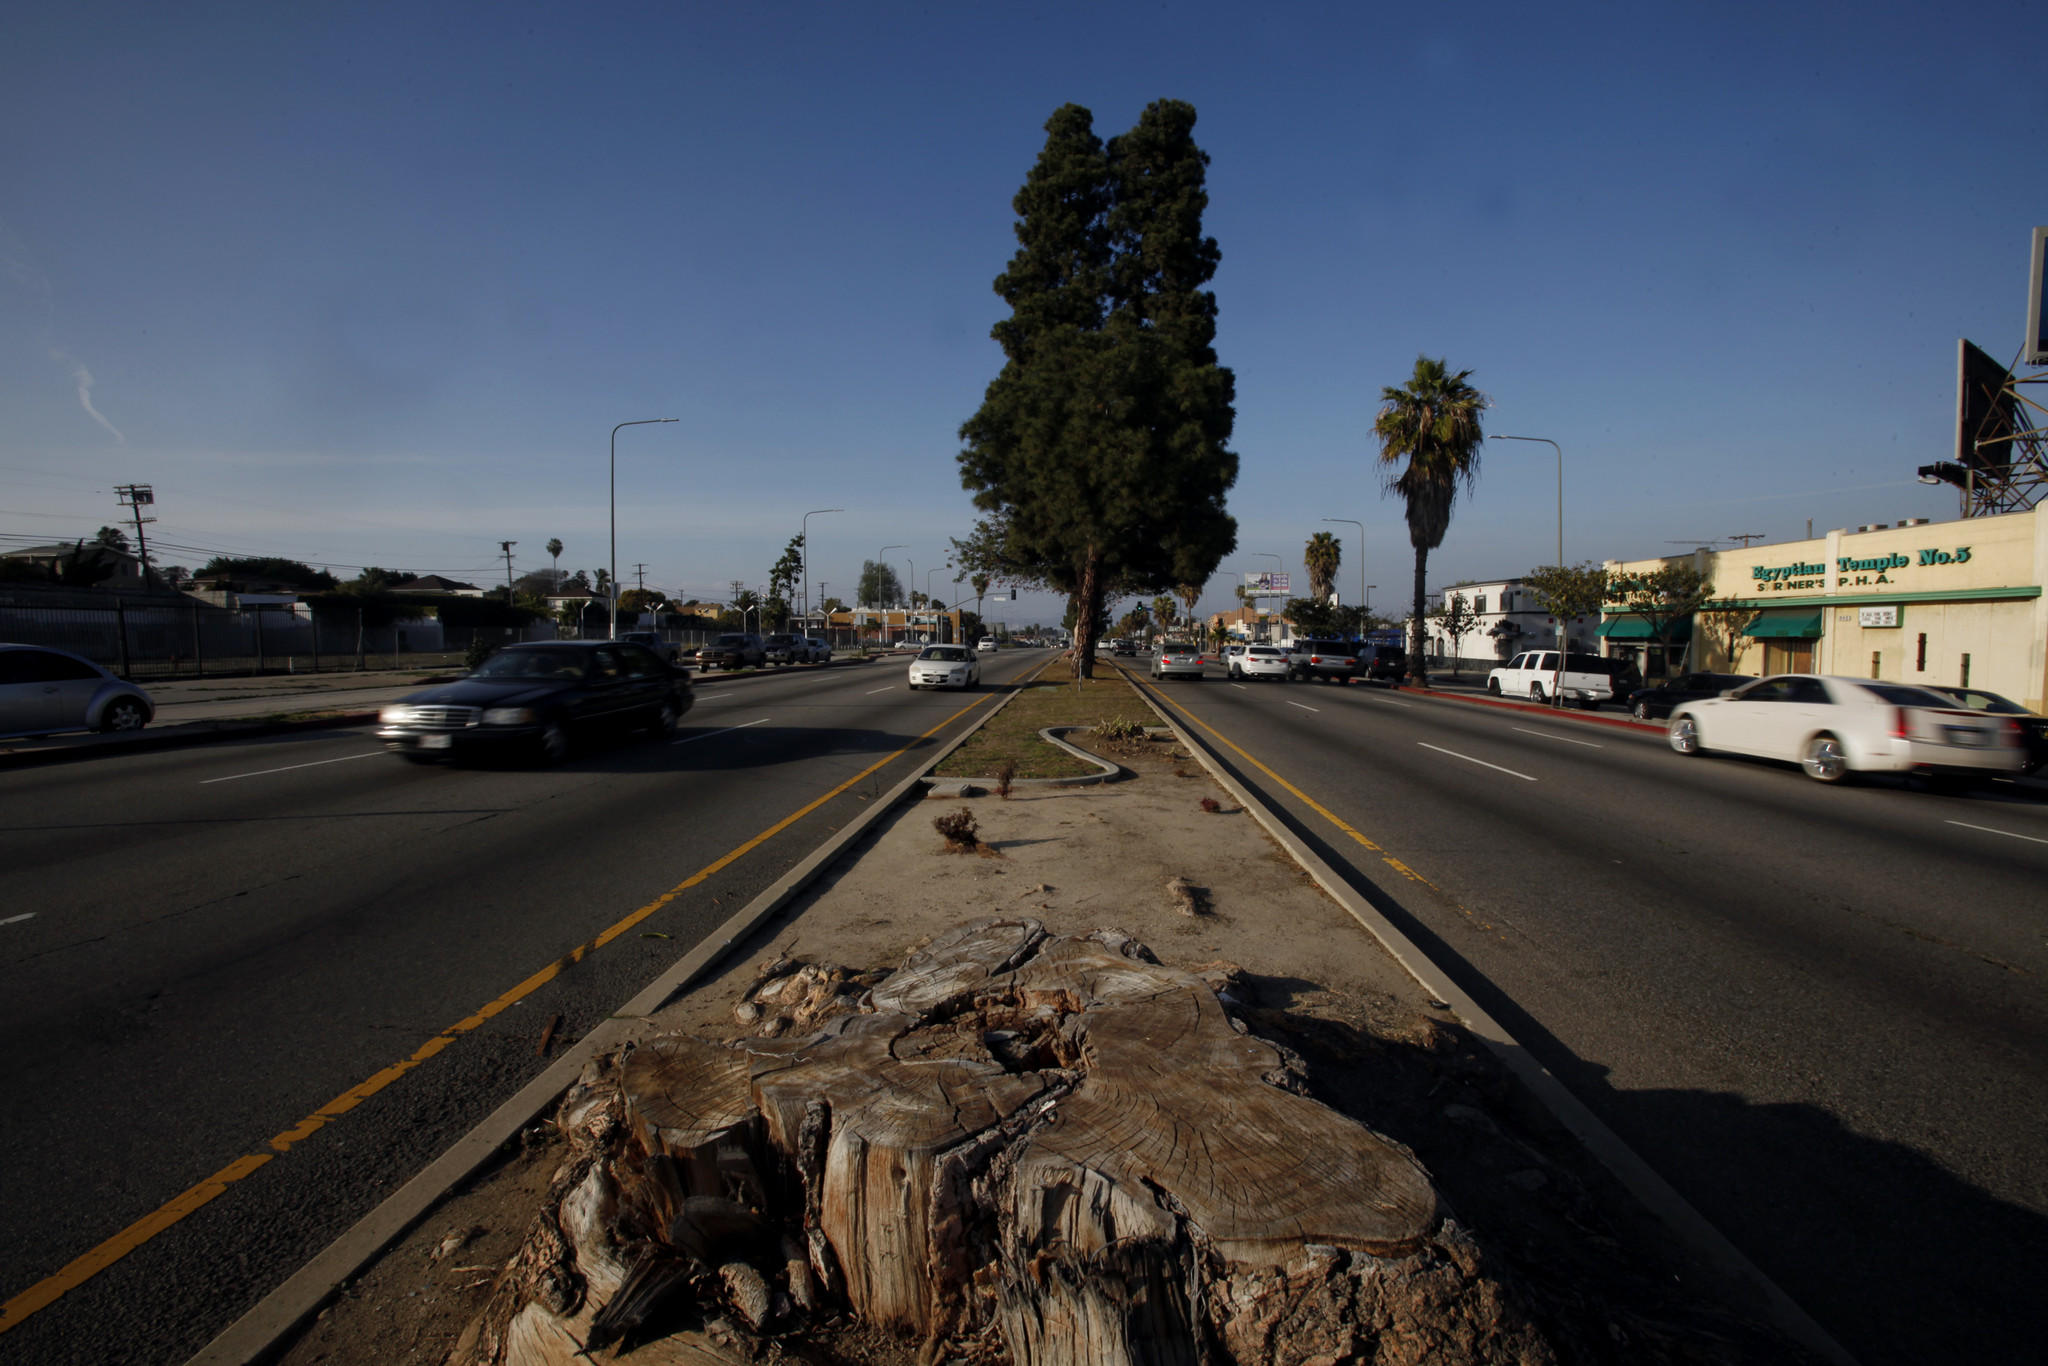 In an era when most communities are trying to preserve trees and expand its green footprint, residents along the Crenshaw Corridor in South Los Angeles are fighting to keep the little greenery it has.